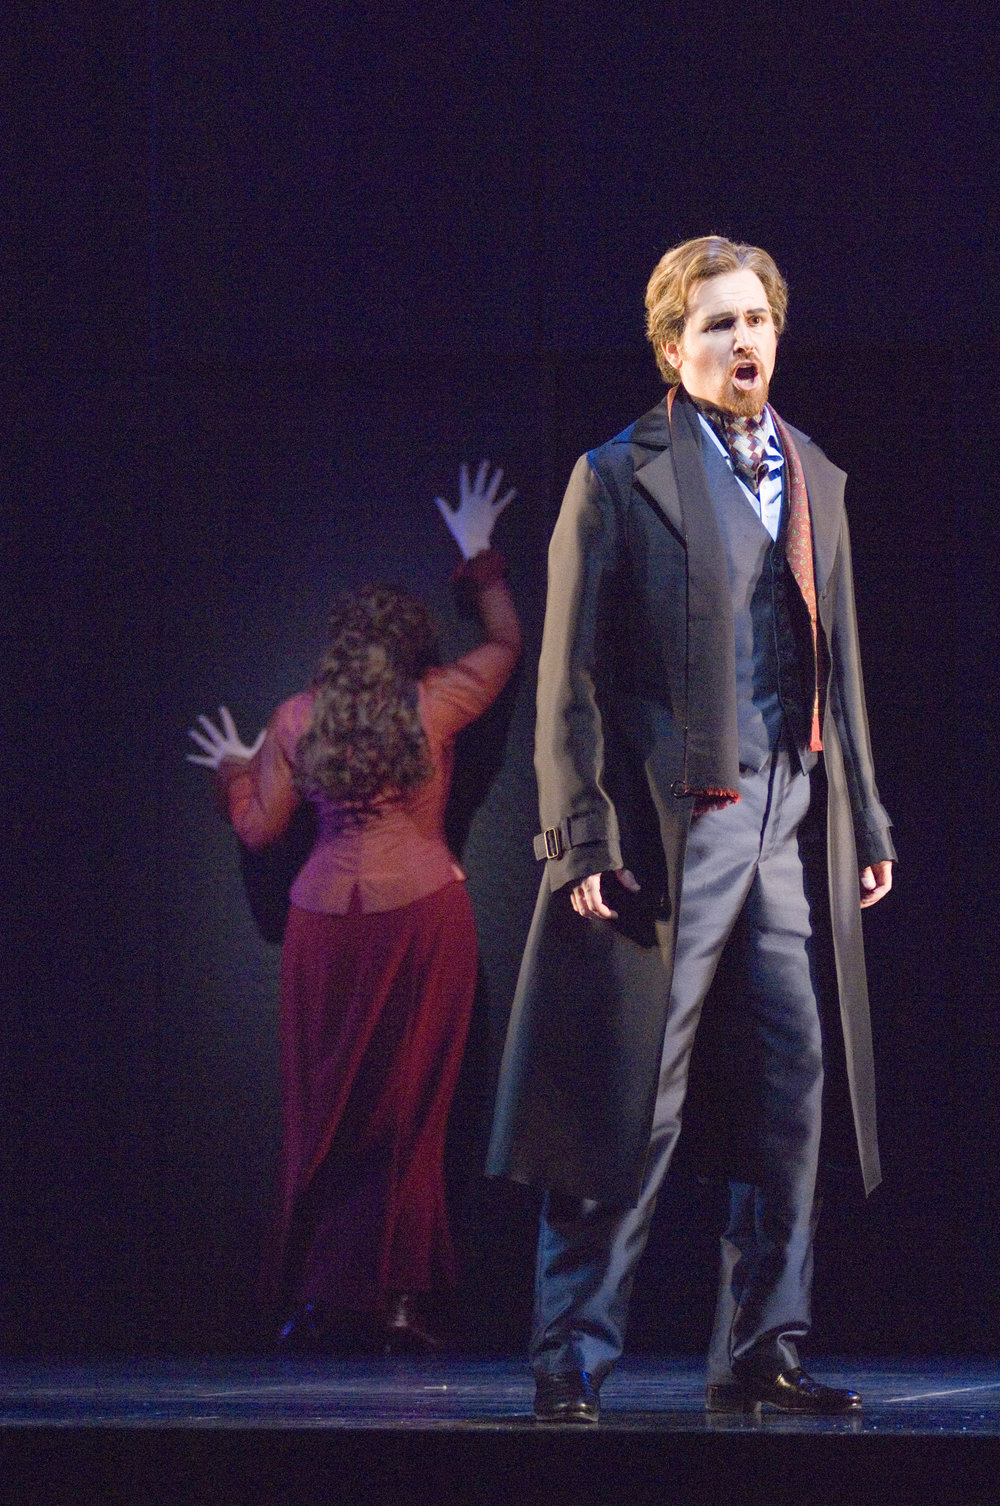 Patrick Miller as Don Ottavio in Don Giovanni with Seattle Opera. Photo by Elise Bakketun.